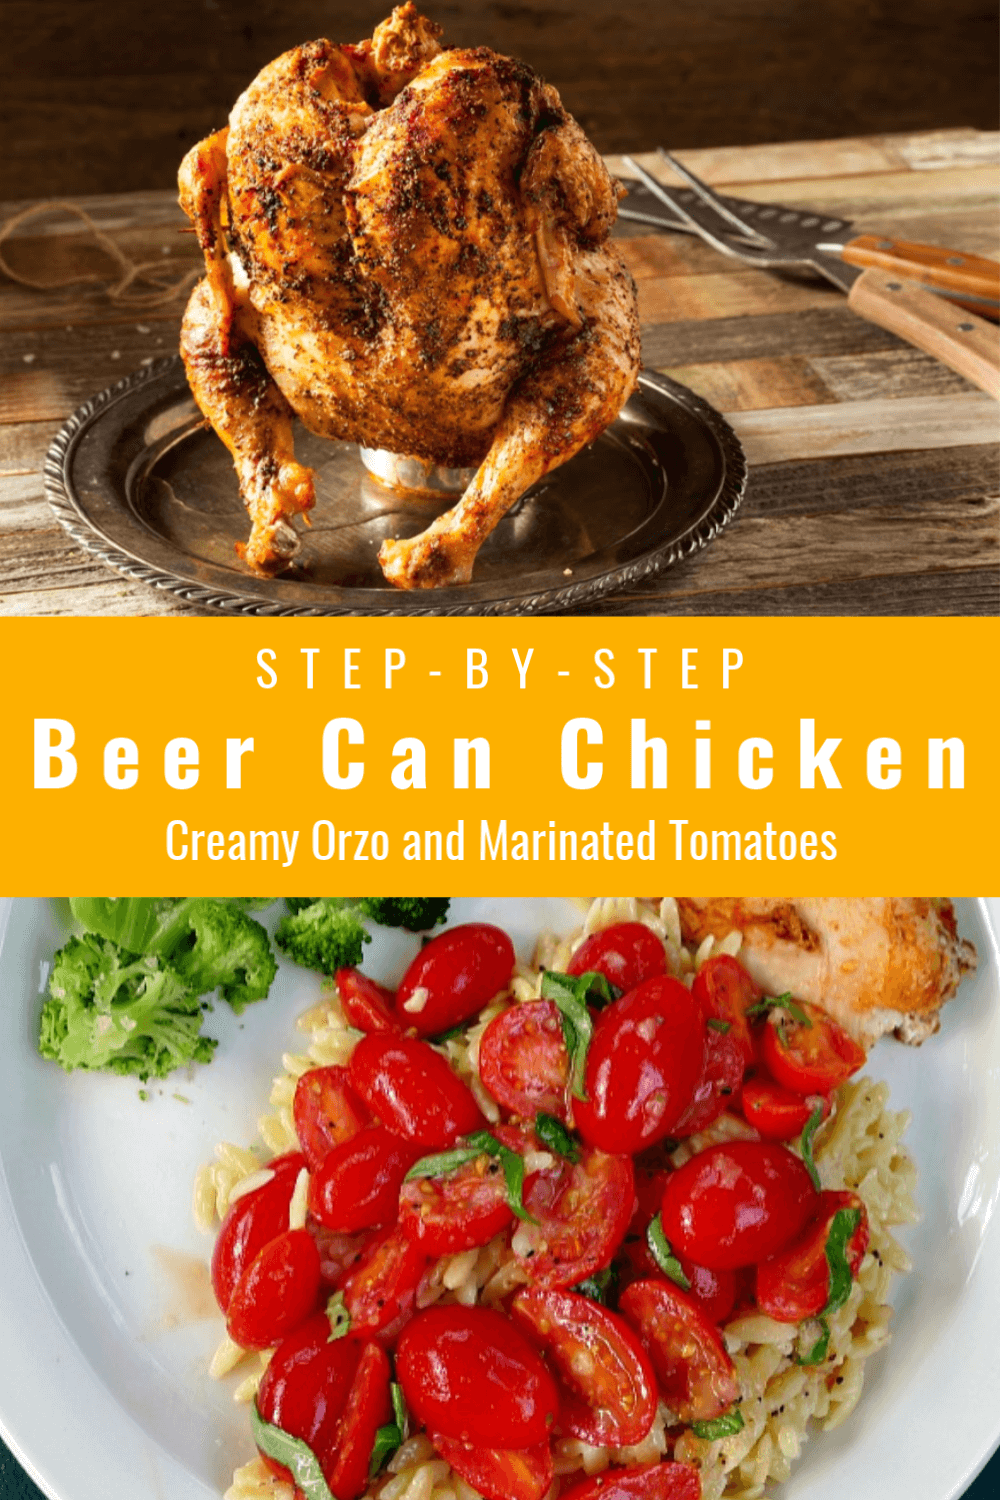 Drunken Chicken and Creamy Orzo with marinated tomatoes is a complete dish you and your family will love. The chicken takes little tending and the creamy orzo side is quick to come together. The seasoned beer makes the chicken tender and juicy, full of spicy flavor with the addition of hot sauce in the beer.